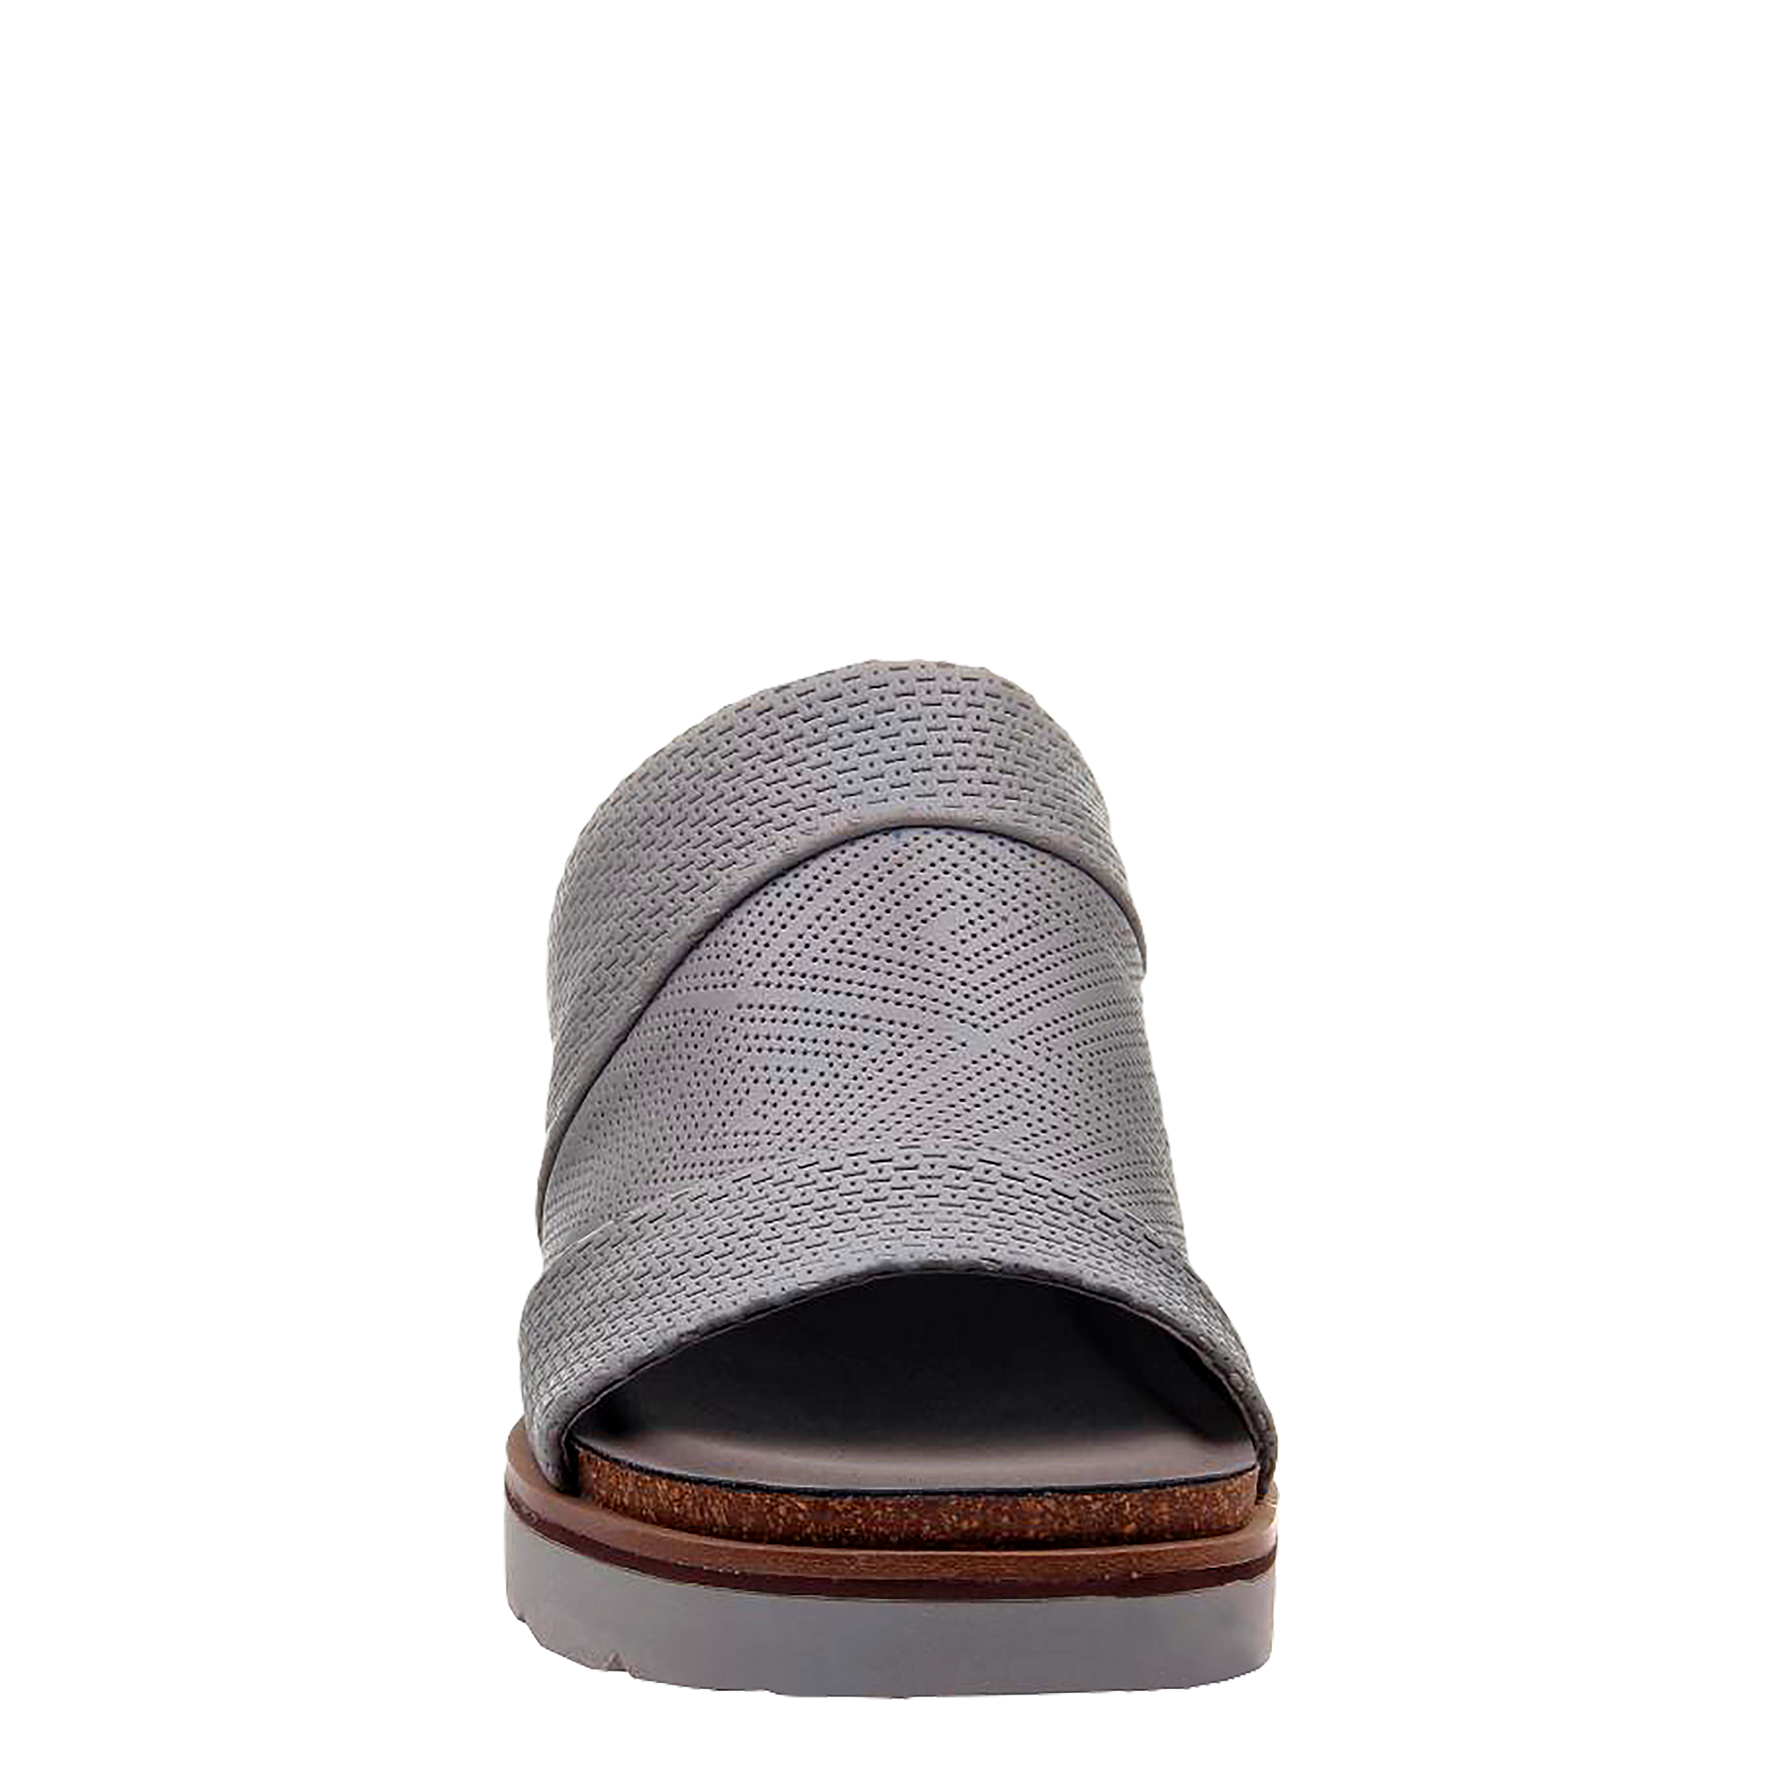 eb5c9c51799 Womens wedge earthshine in zinc front view